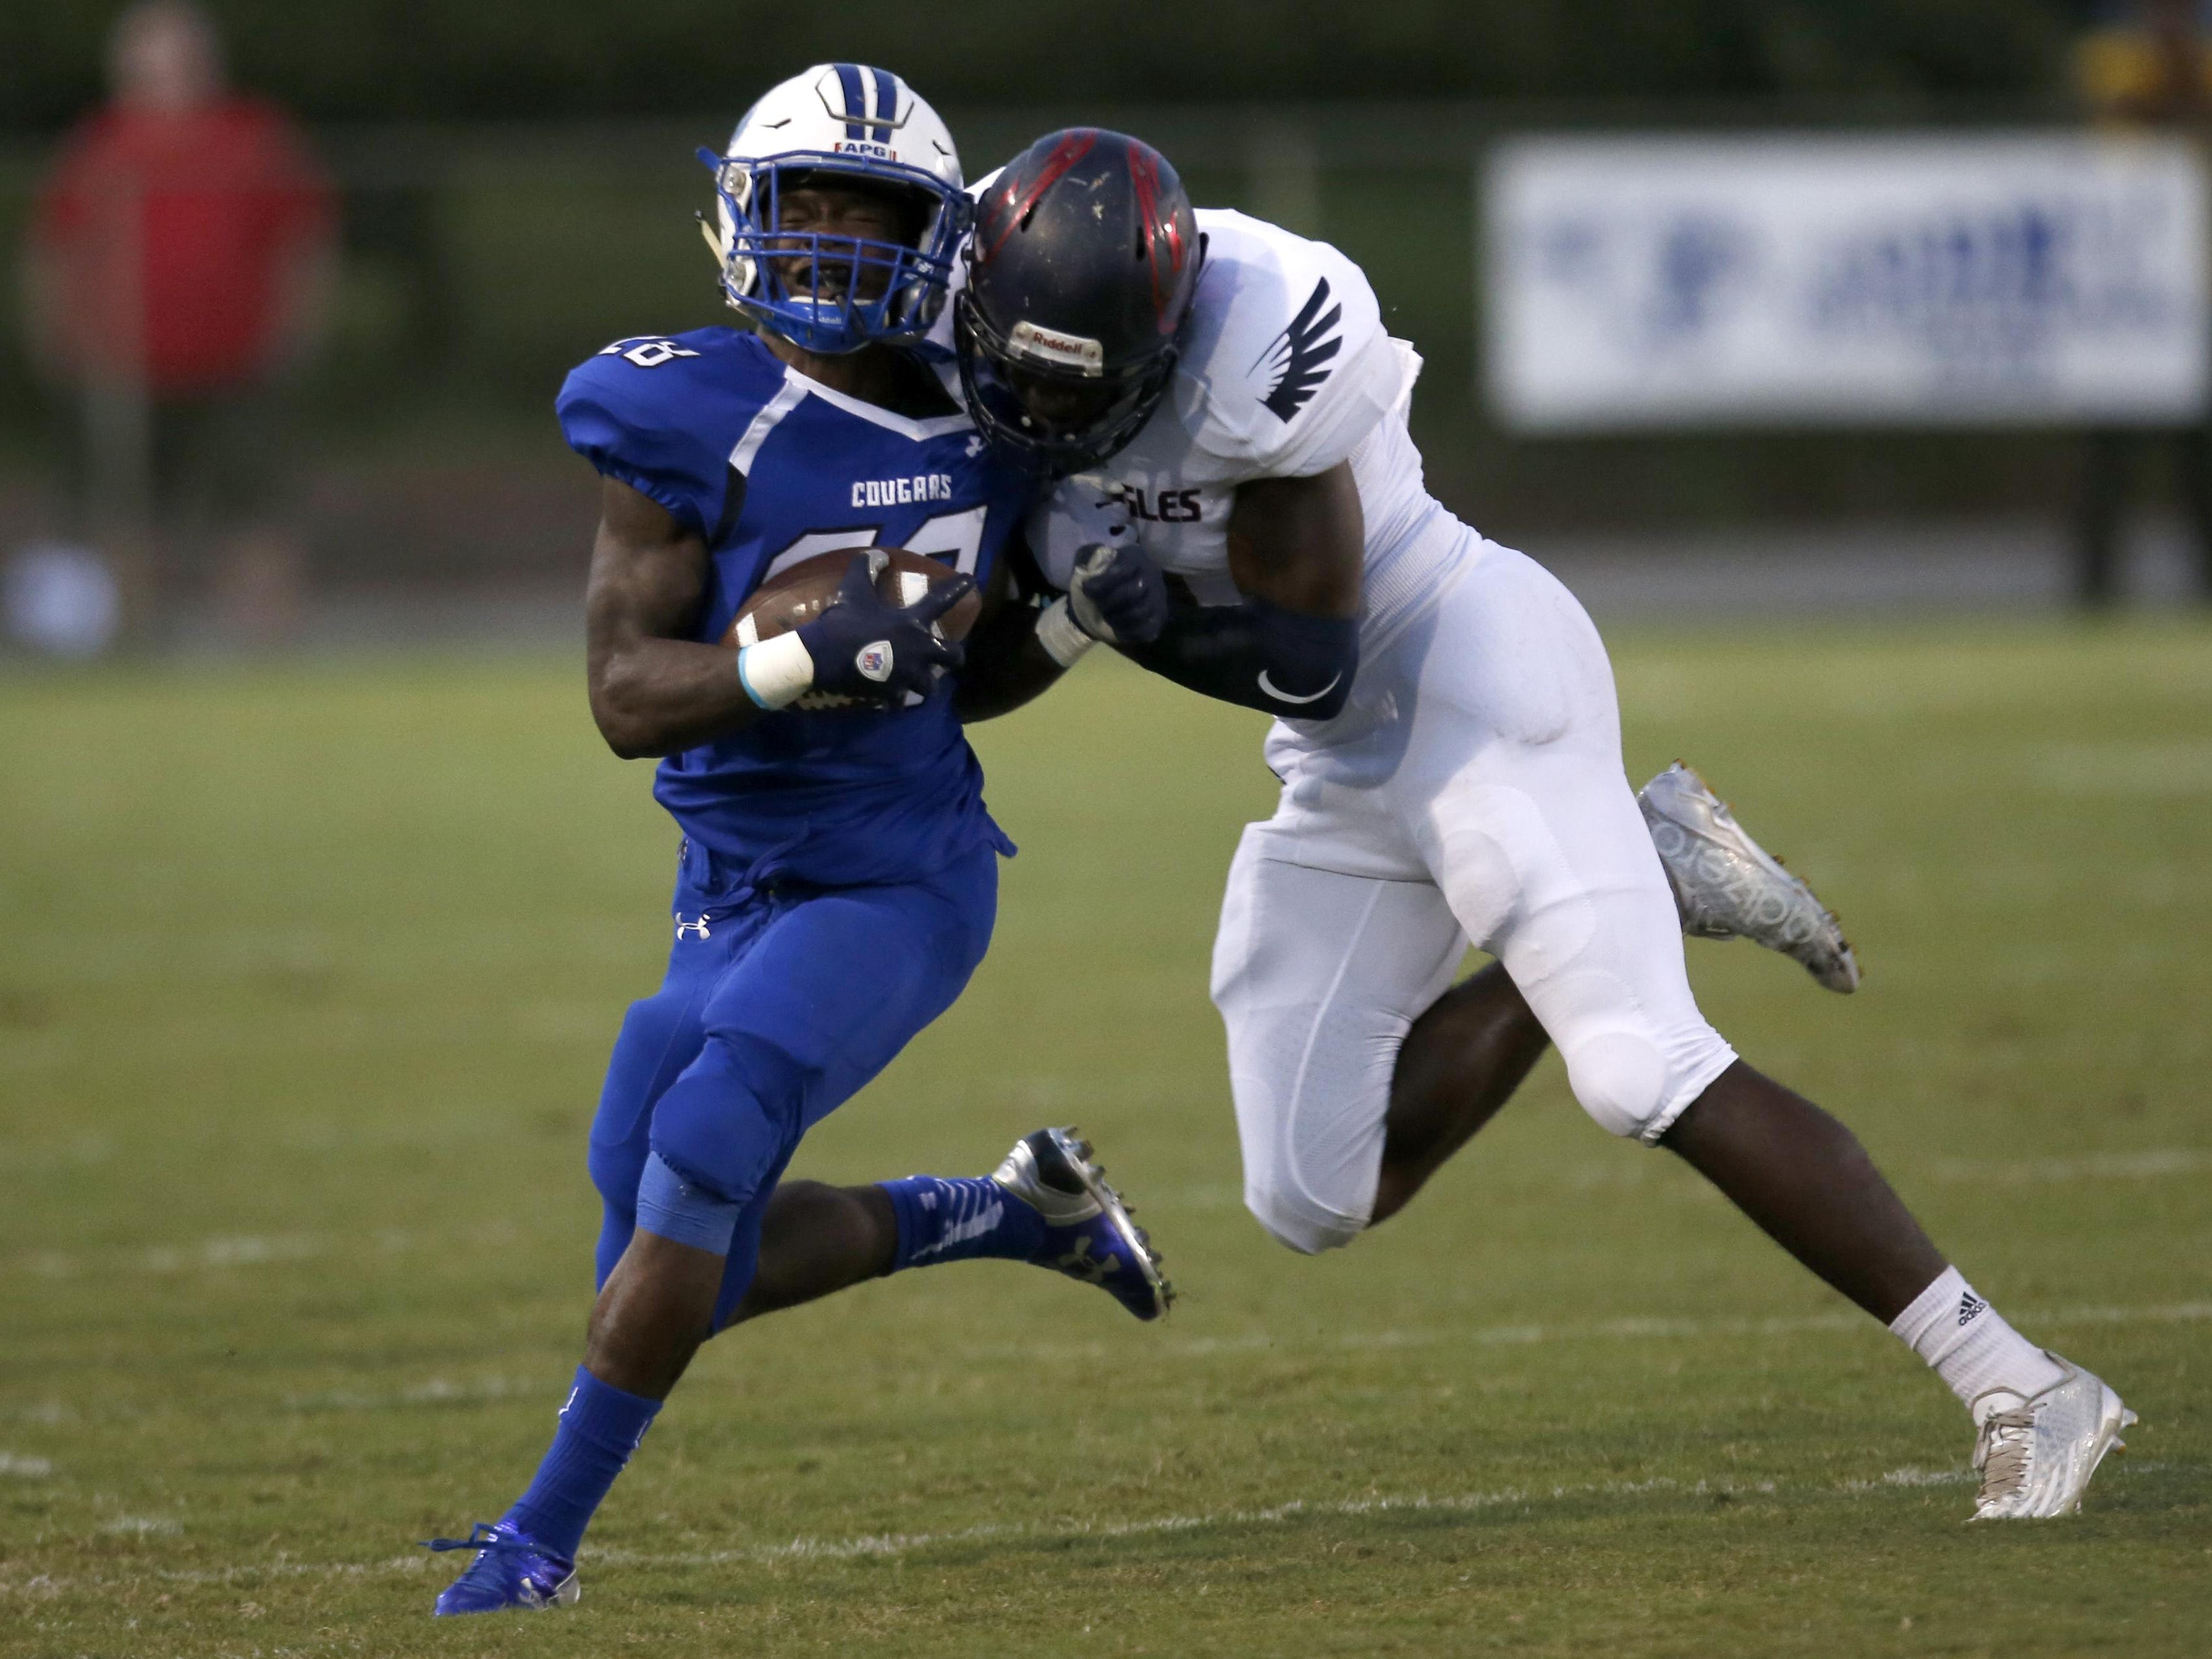 Wakulla's Keith Gavin drives Godby's Tyquan Watson out of bounds in a hard collision during the two team's game last week. Wakulla won 15-6, solidifying its spot atop the power rankings.